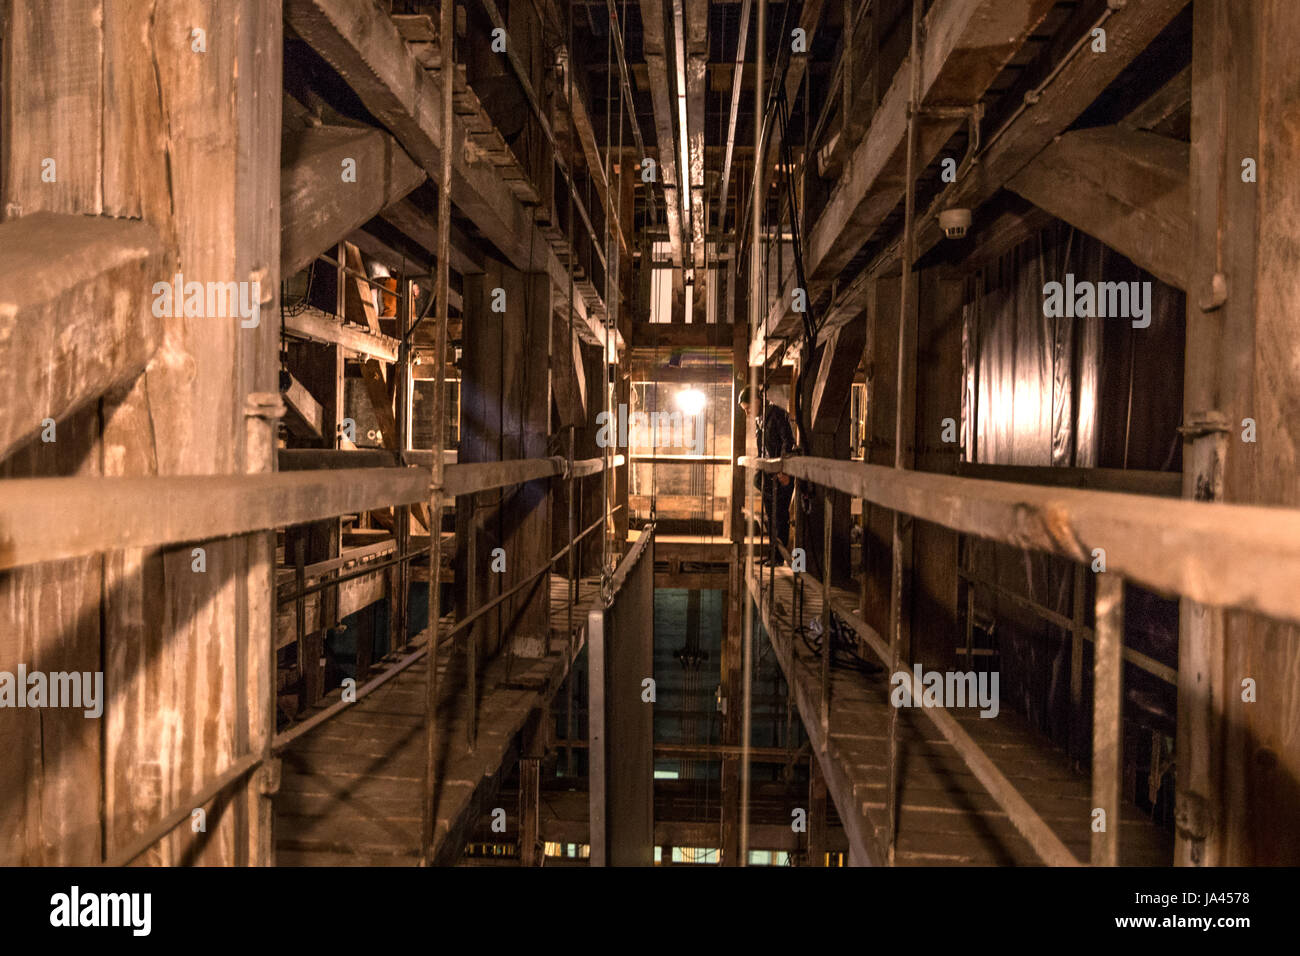 Behind the stage in an old theatre building - recesses, corners, interiors and the mystery or mechanics of art. - Stock Image